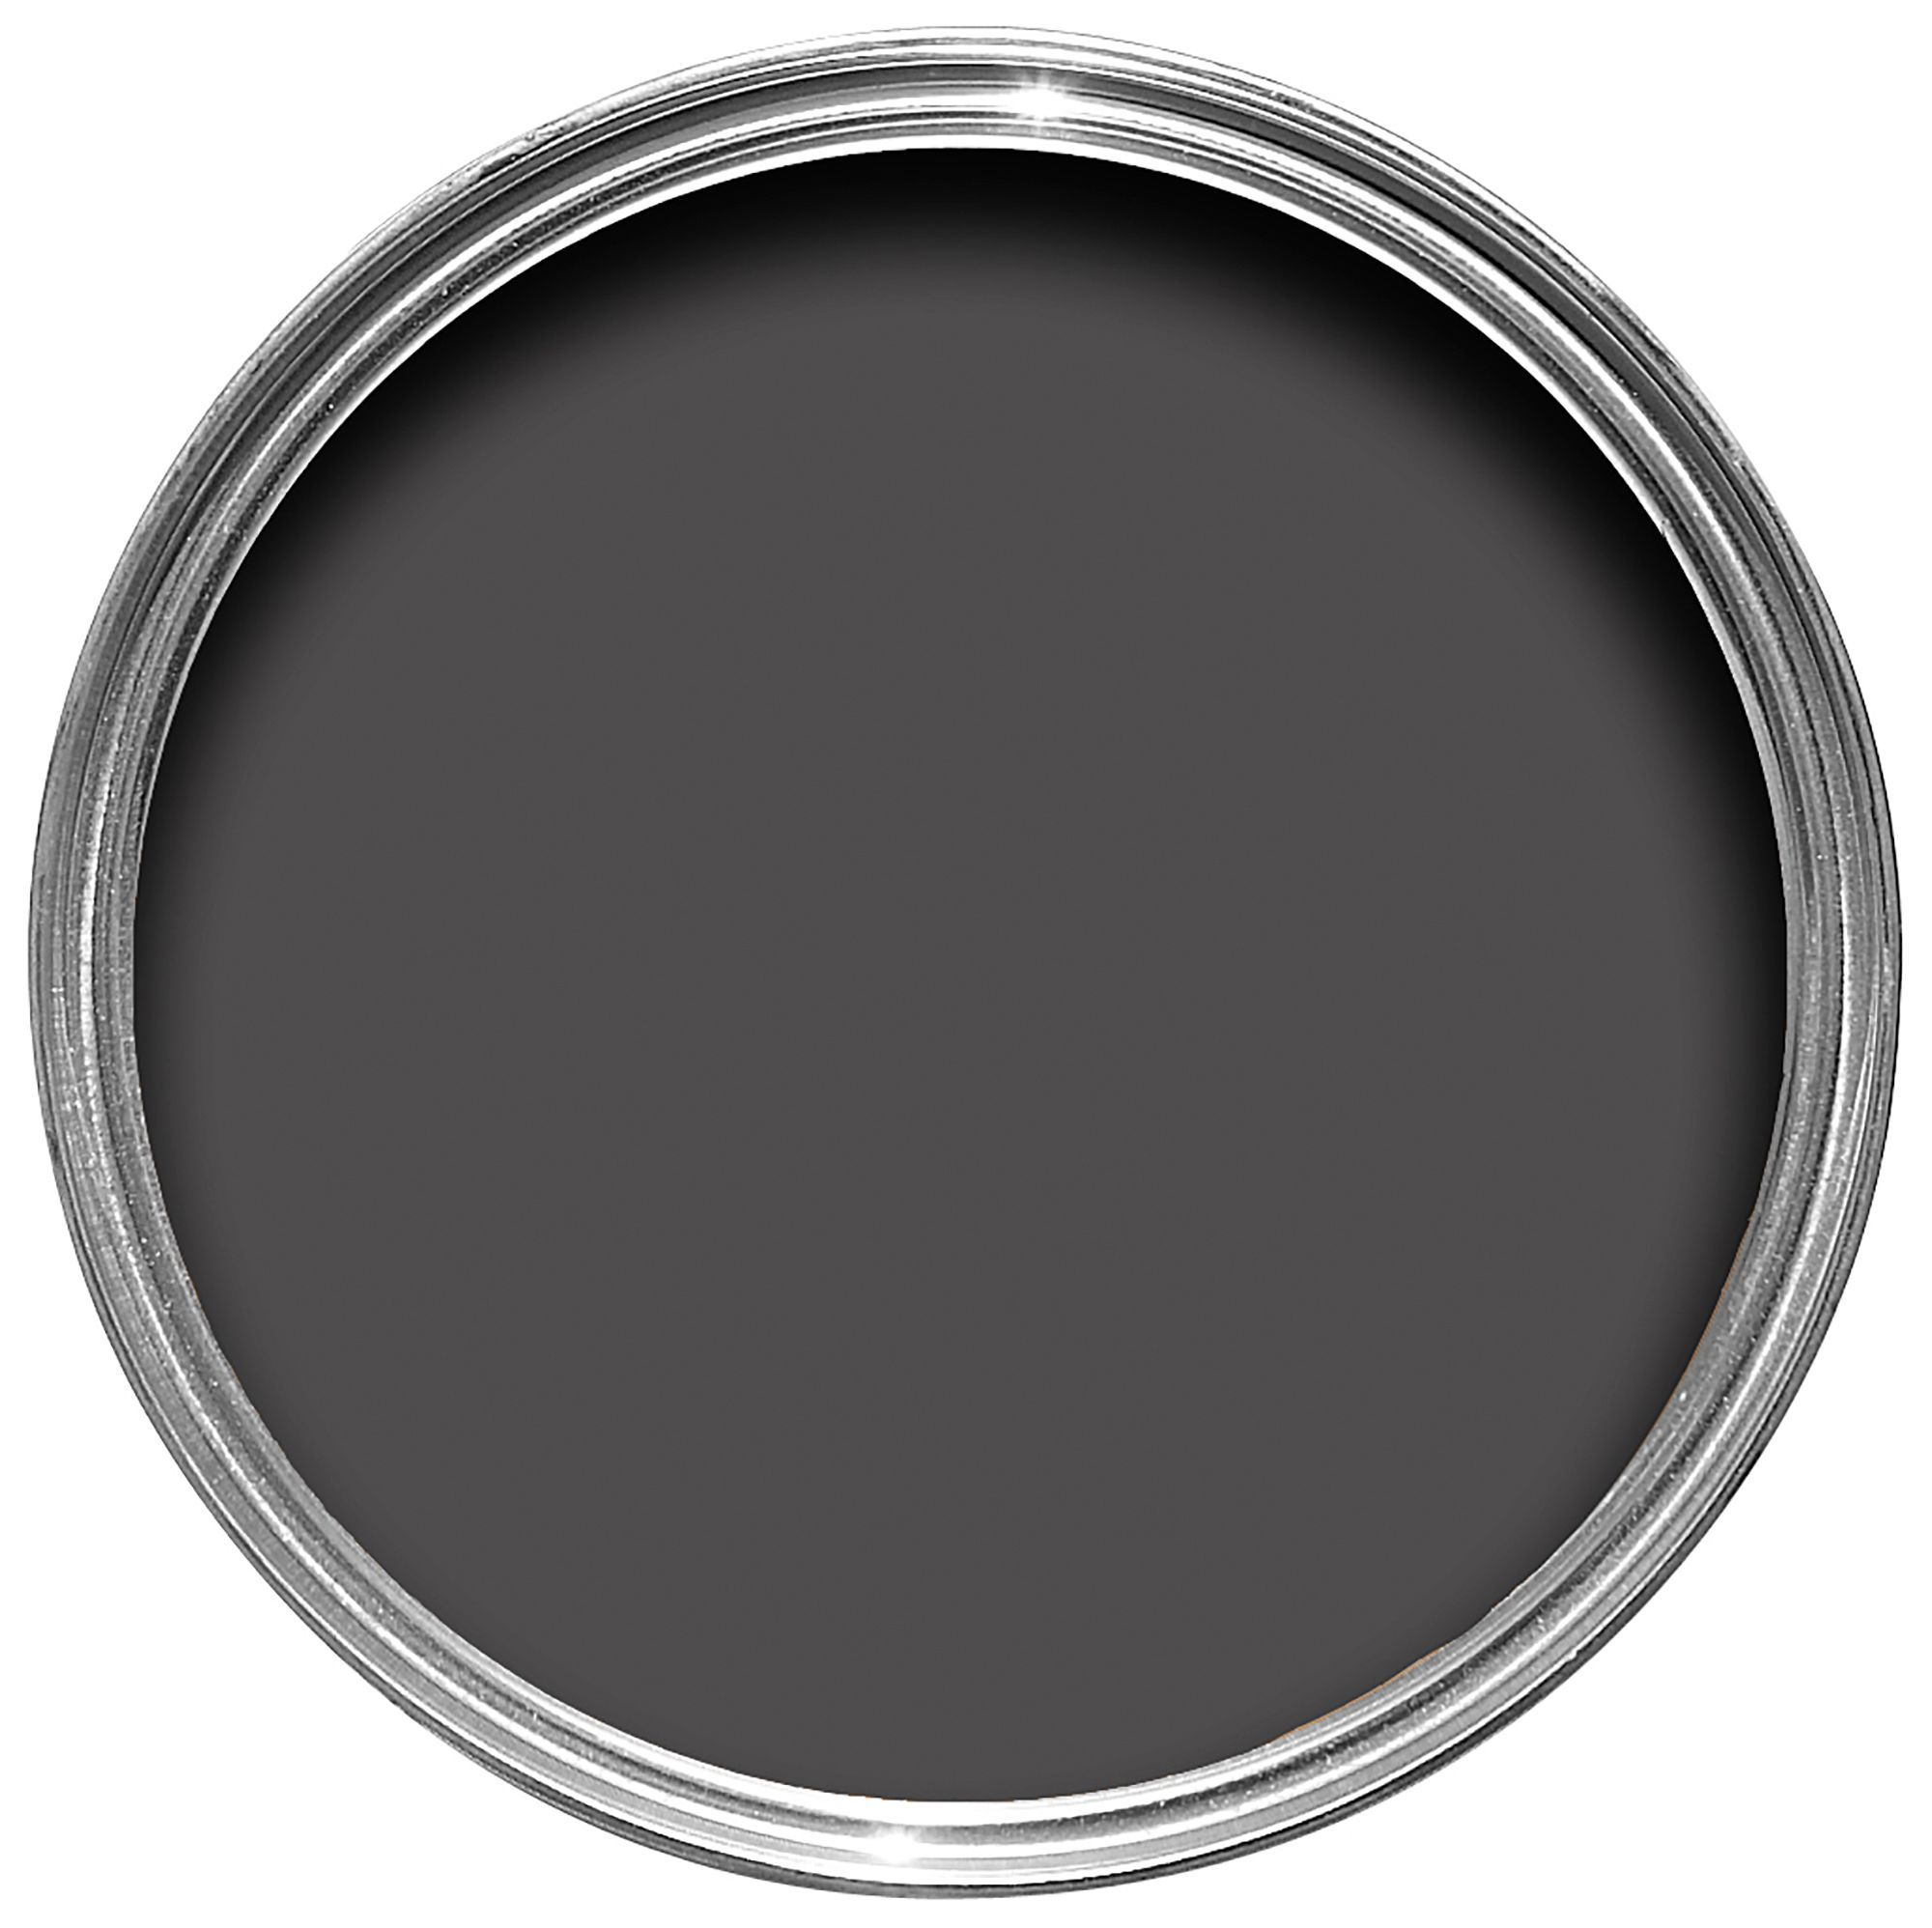 Colours interior grey slate gloss wood metal paint 750ml departments diy at b q - Sandtex exterior gloss paint paint ...